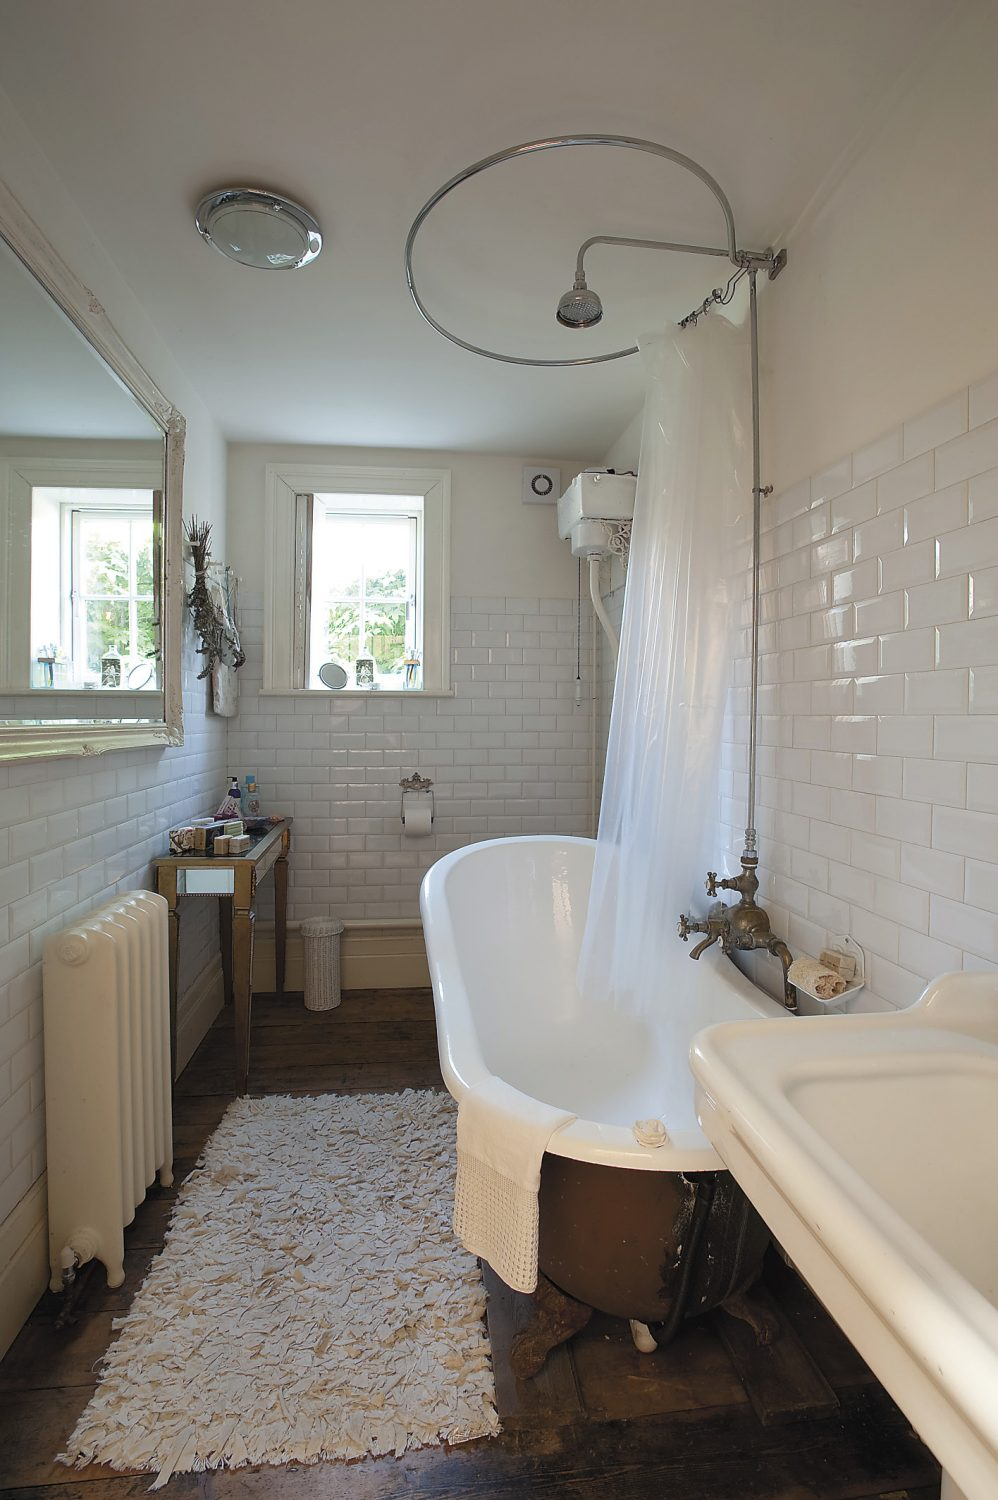 the ground-floor bathroom features a reclaimed roll-top bath and Vickie and Graham have retained all the original tap fittings